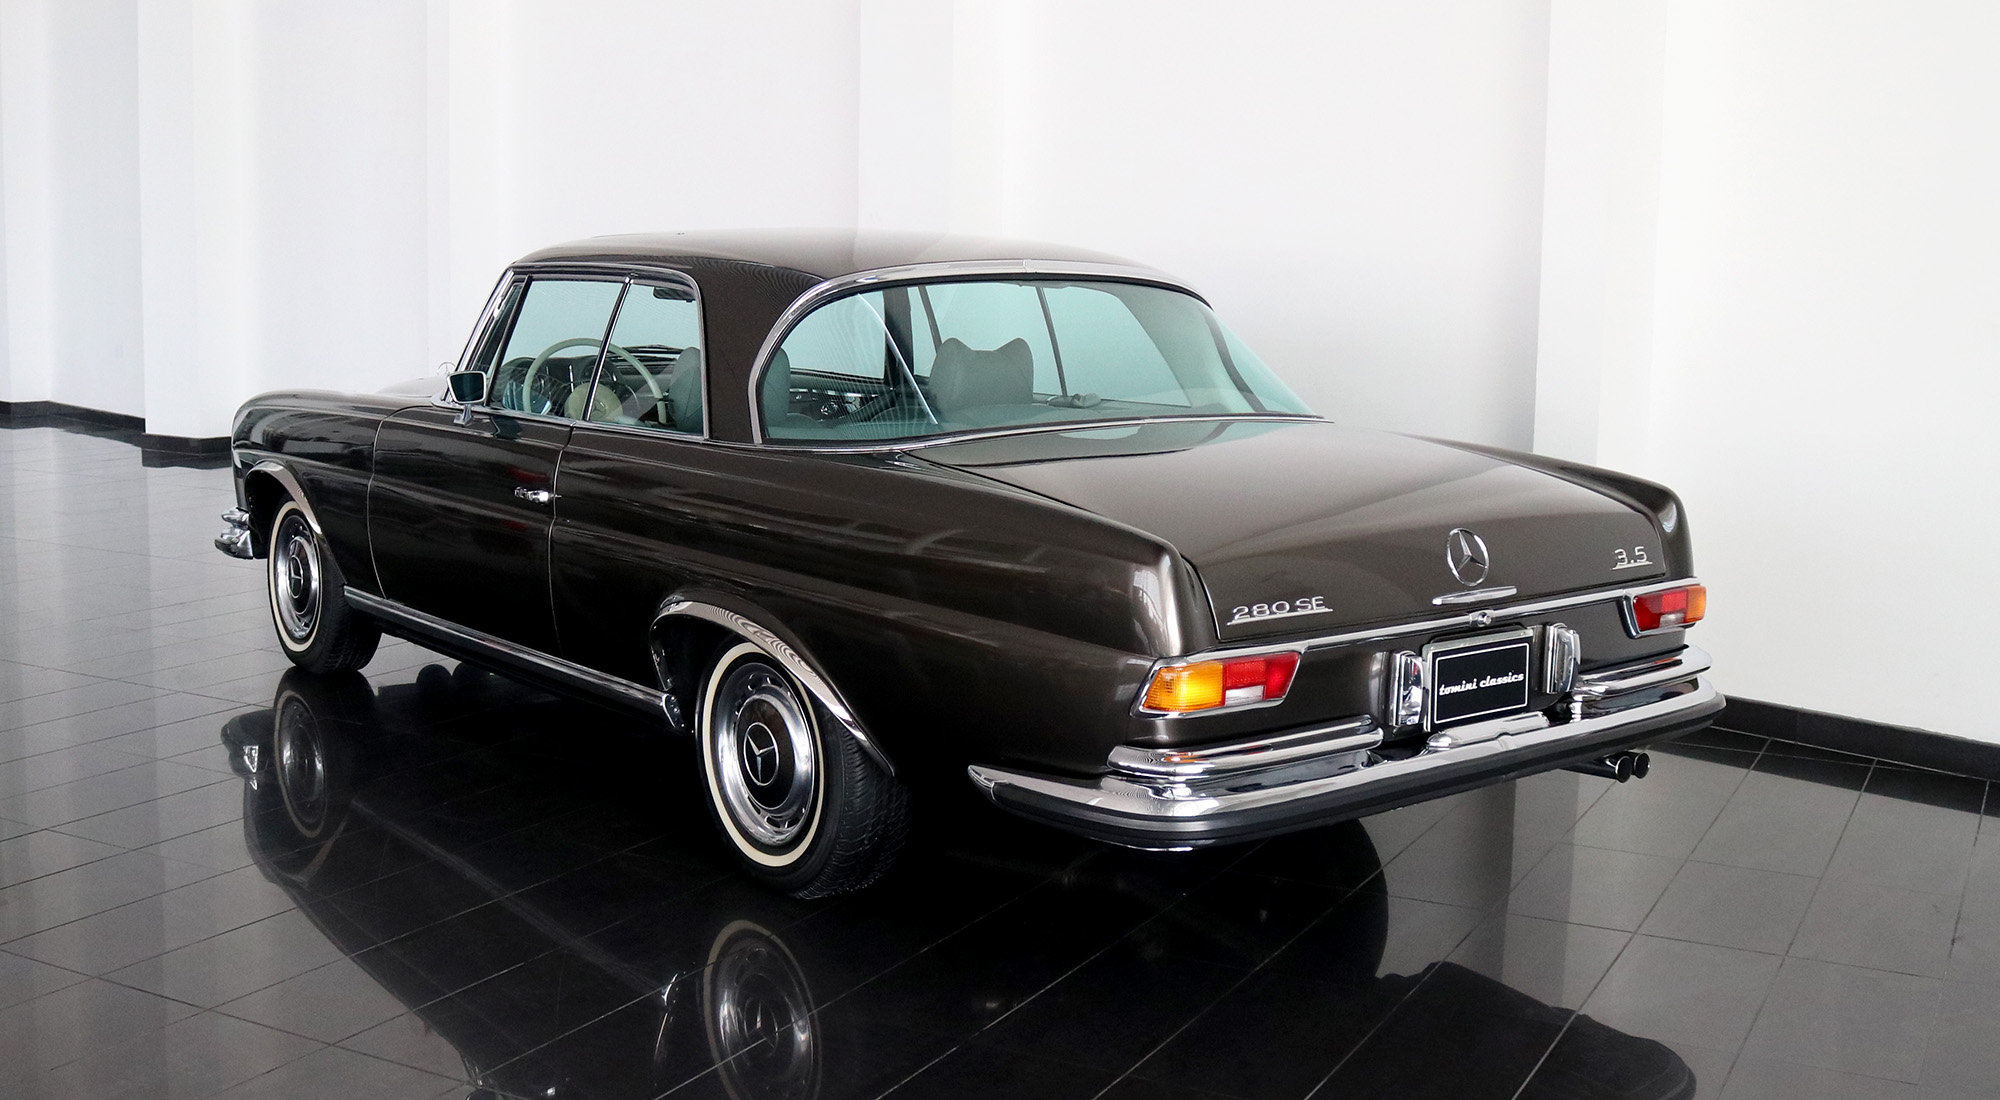 1970 Mercedes-Benz 280SE 3.5 Coupe For Sale (picture 3 of 6)